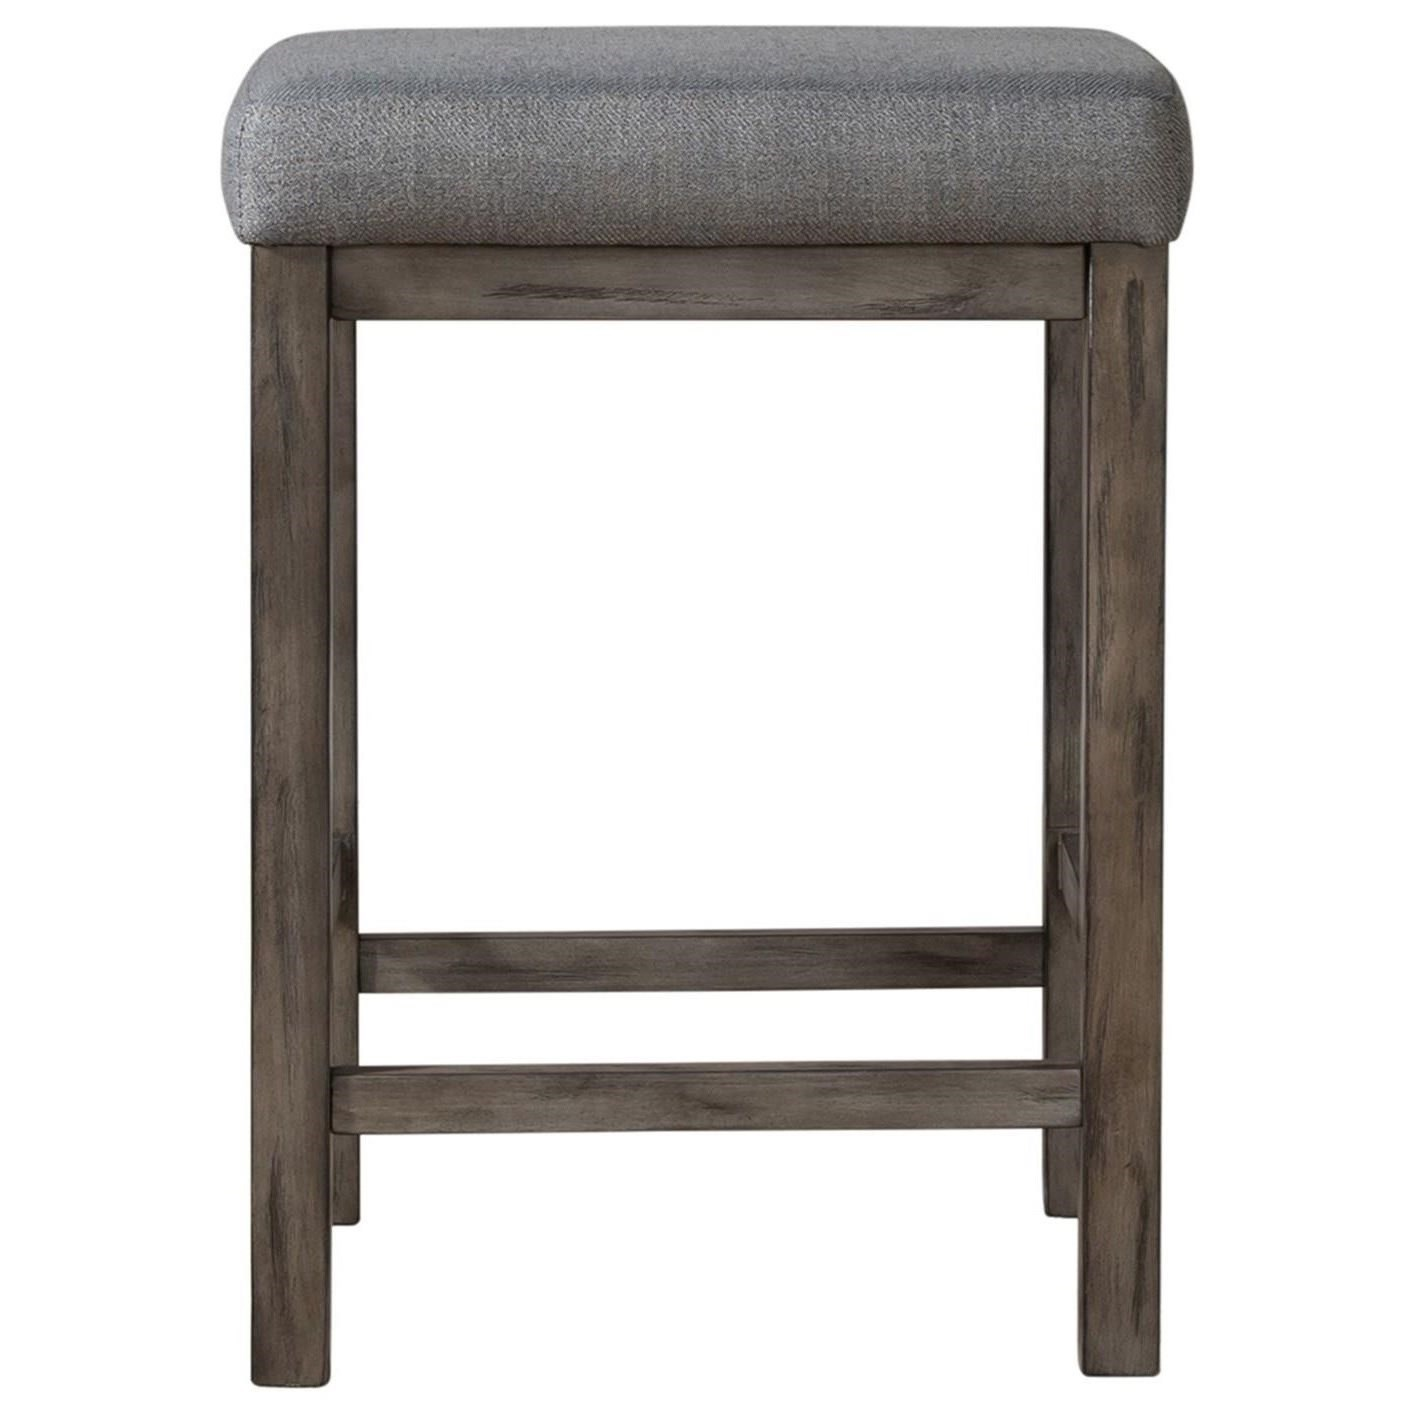 Hayden Way Upholstered Console Stool by Liberty Furniture at Standard Furniture